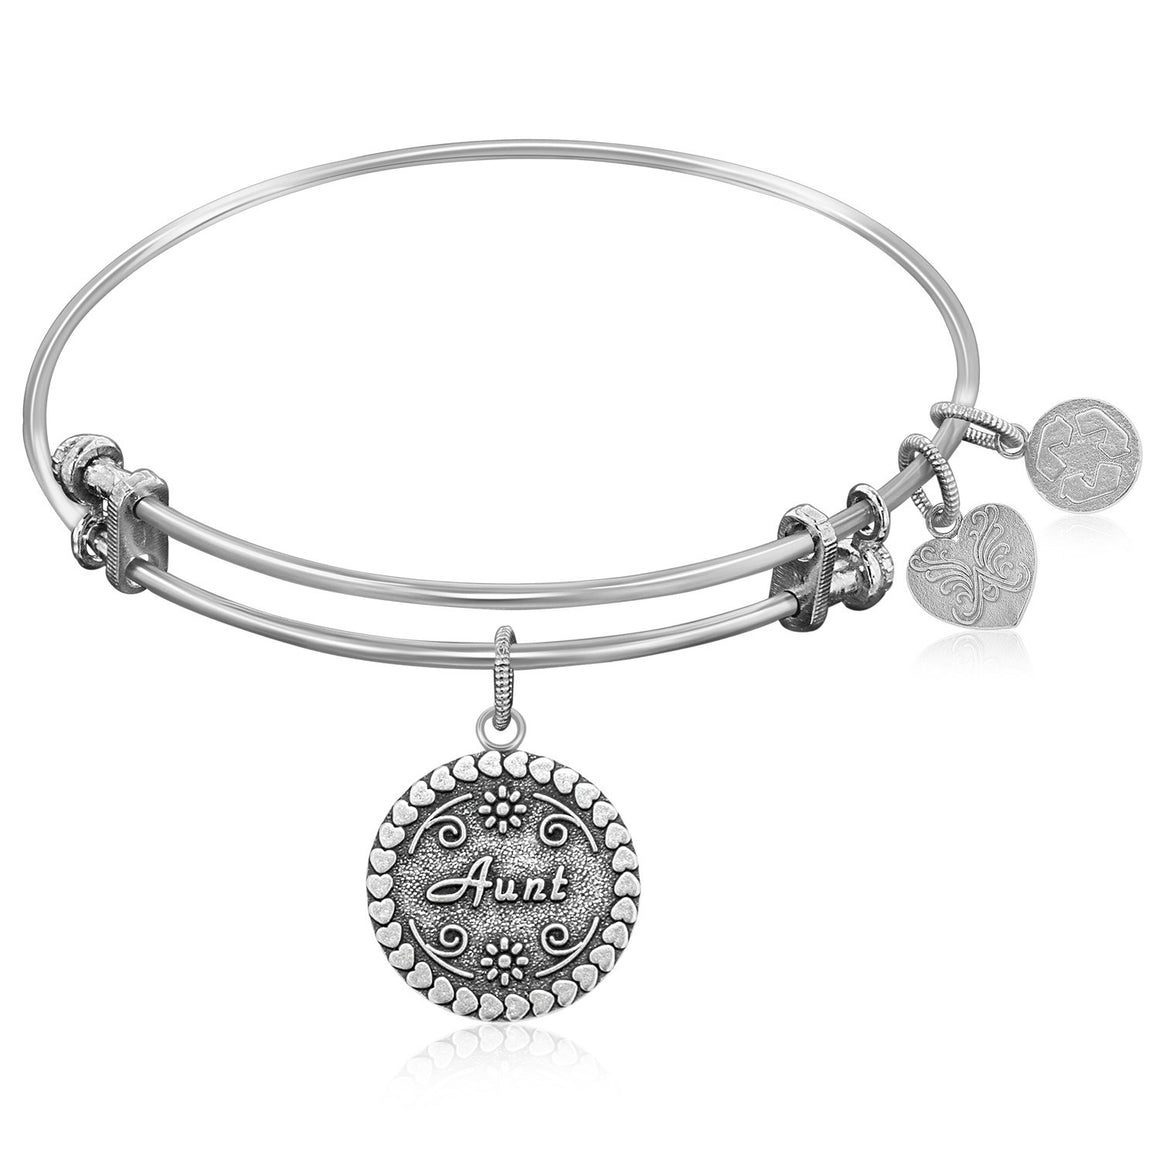 Expandable Bangle in White Tone Brass with Aunt Symbol